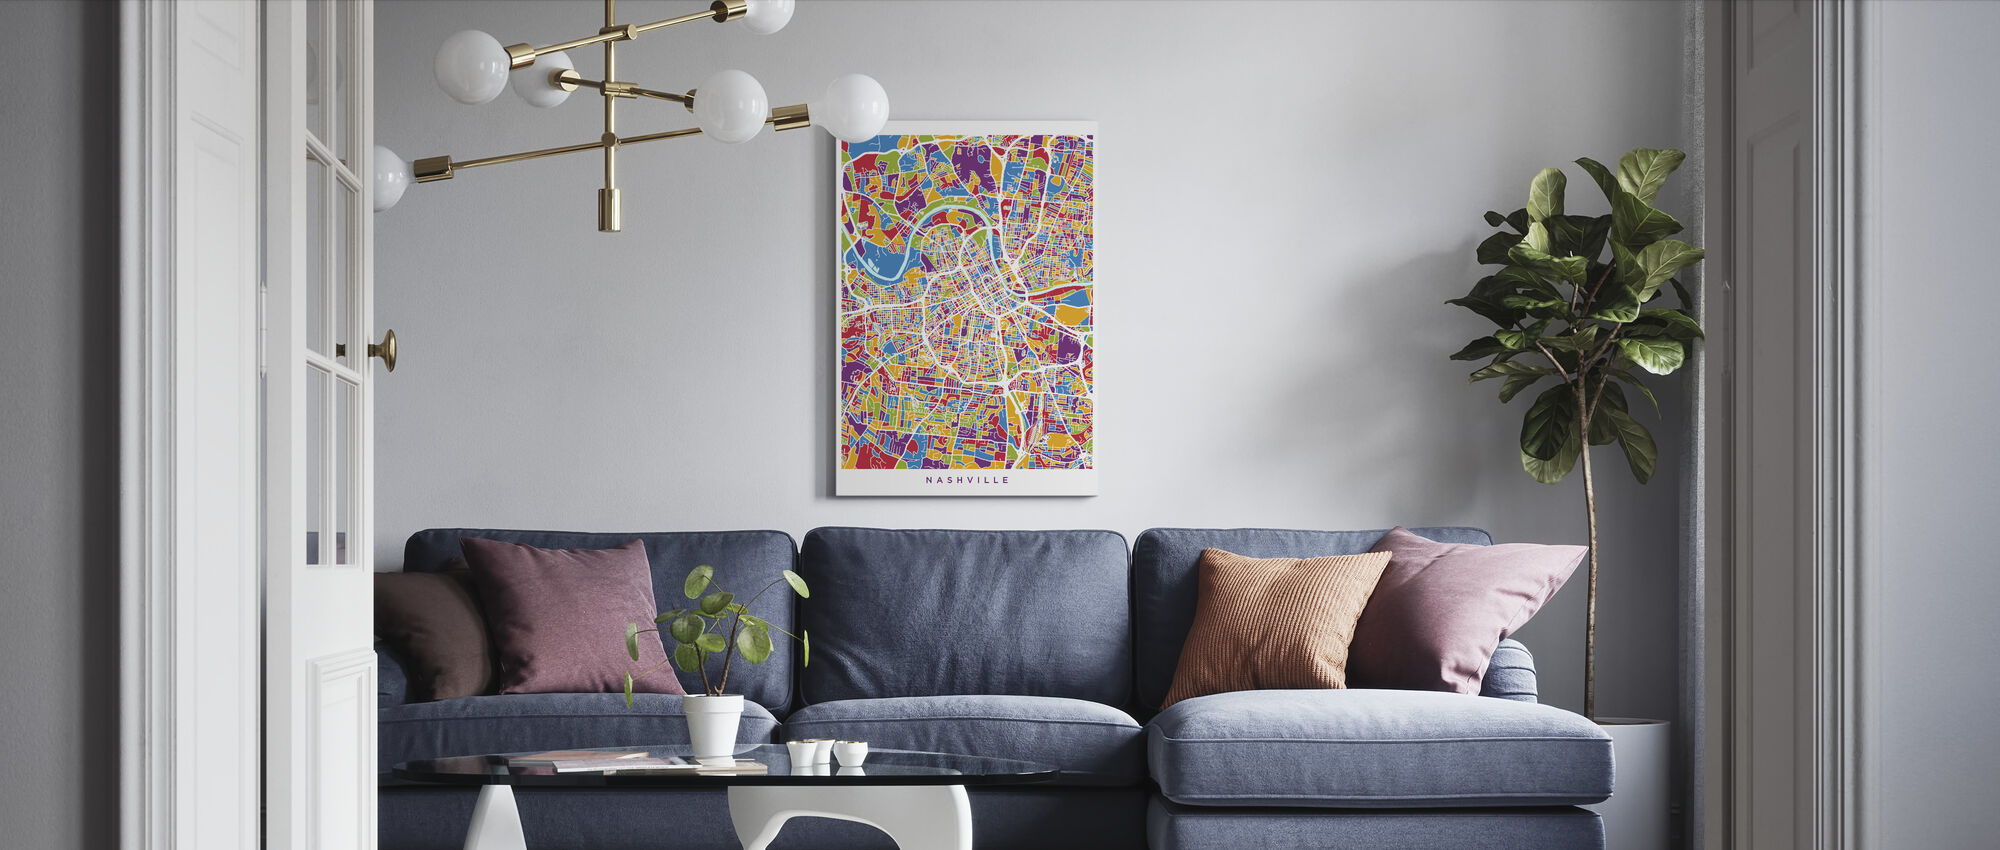 Nashville Tennessee City Map - Canvas print - Living Room